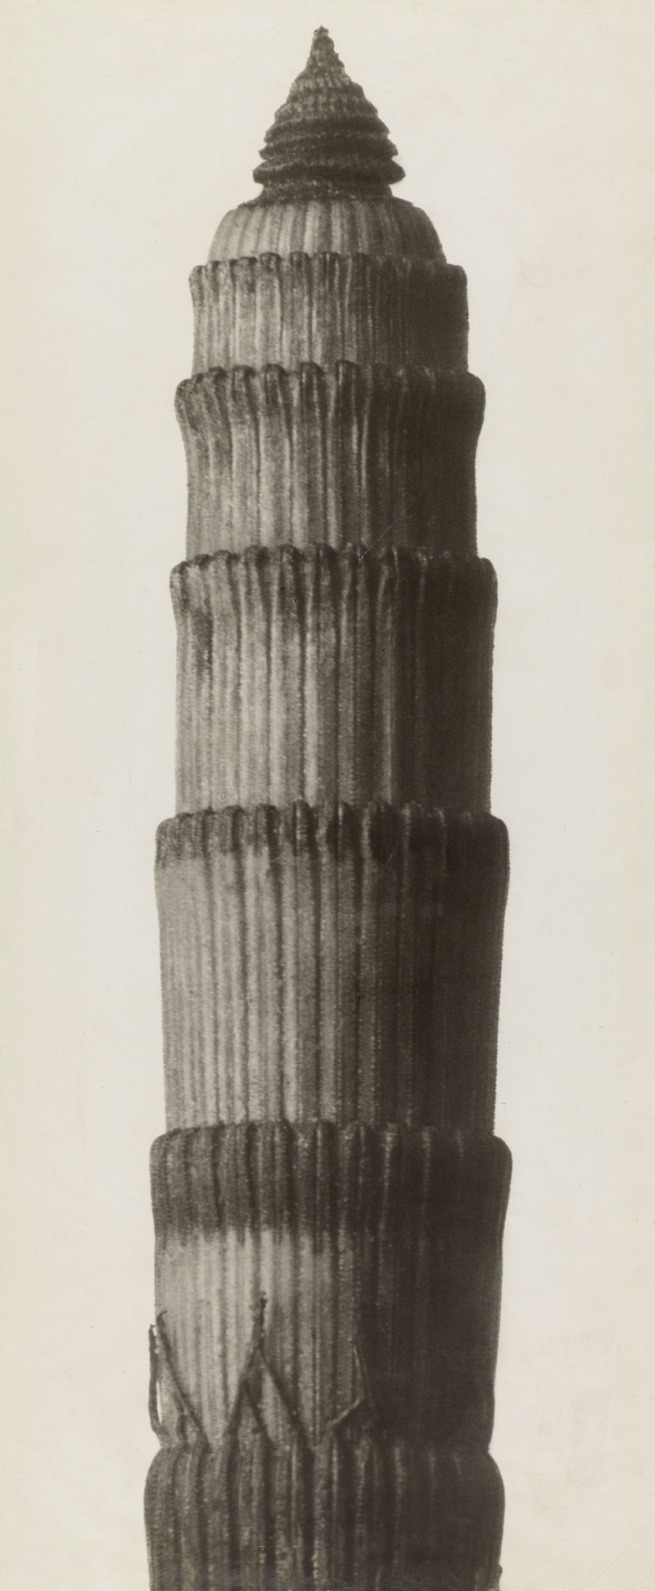 Karl Blossfeldt. 'Equisetum hyemale. Winter Horsetail' before 1929